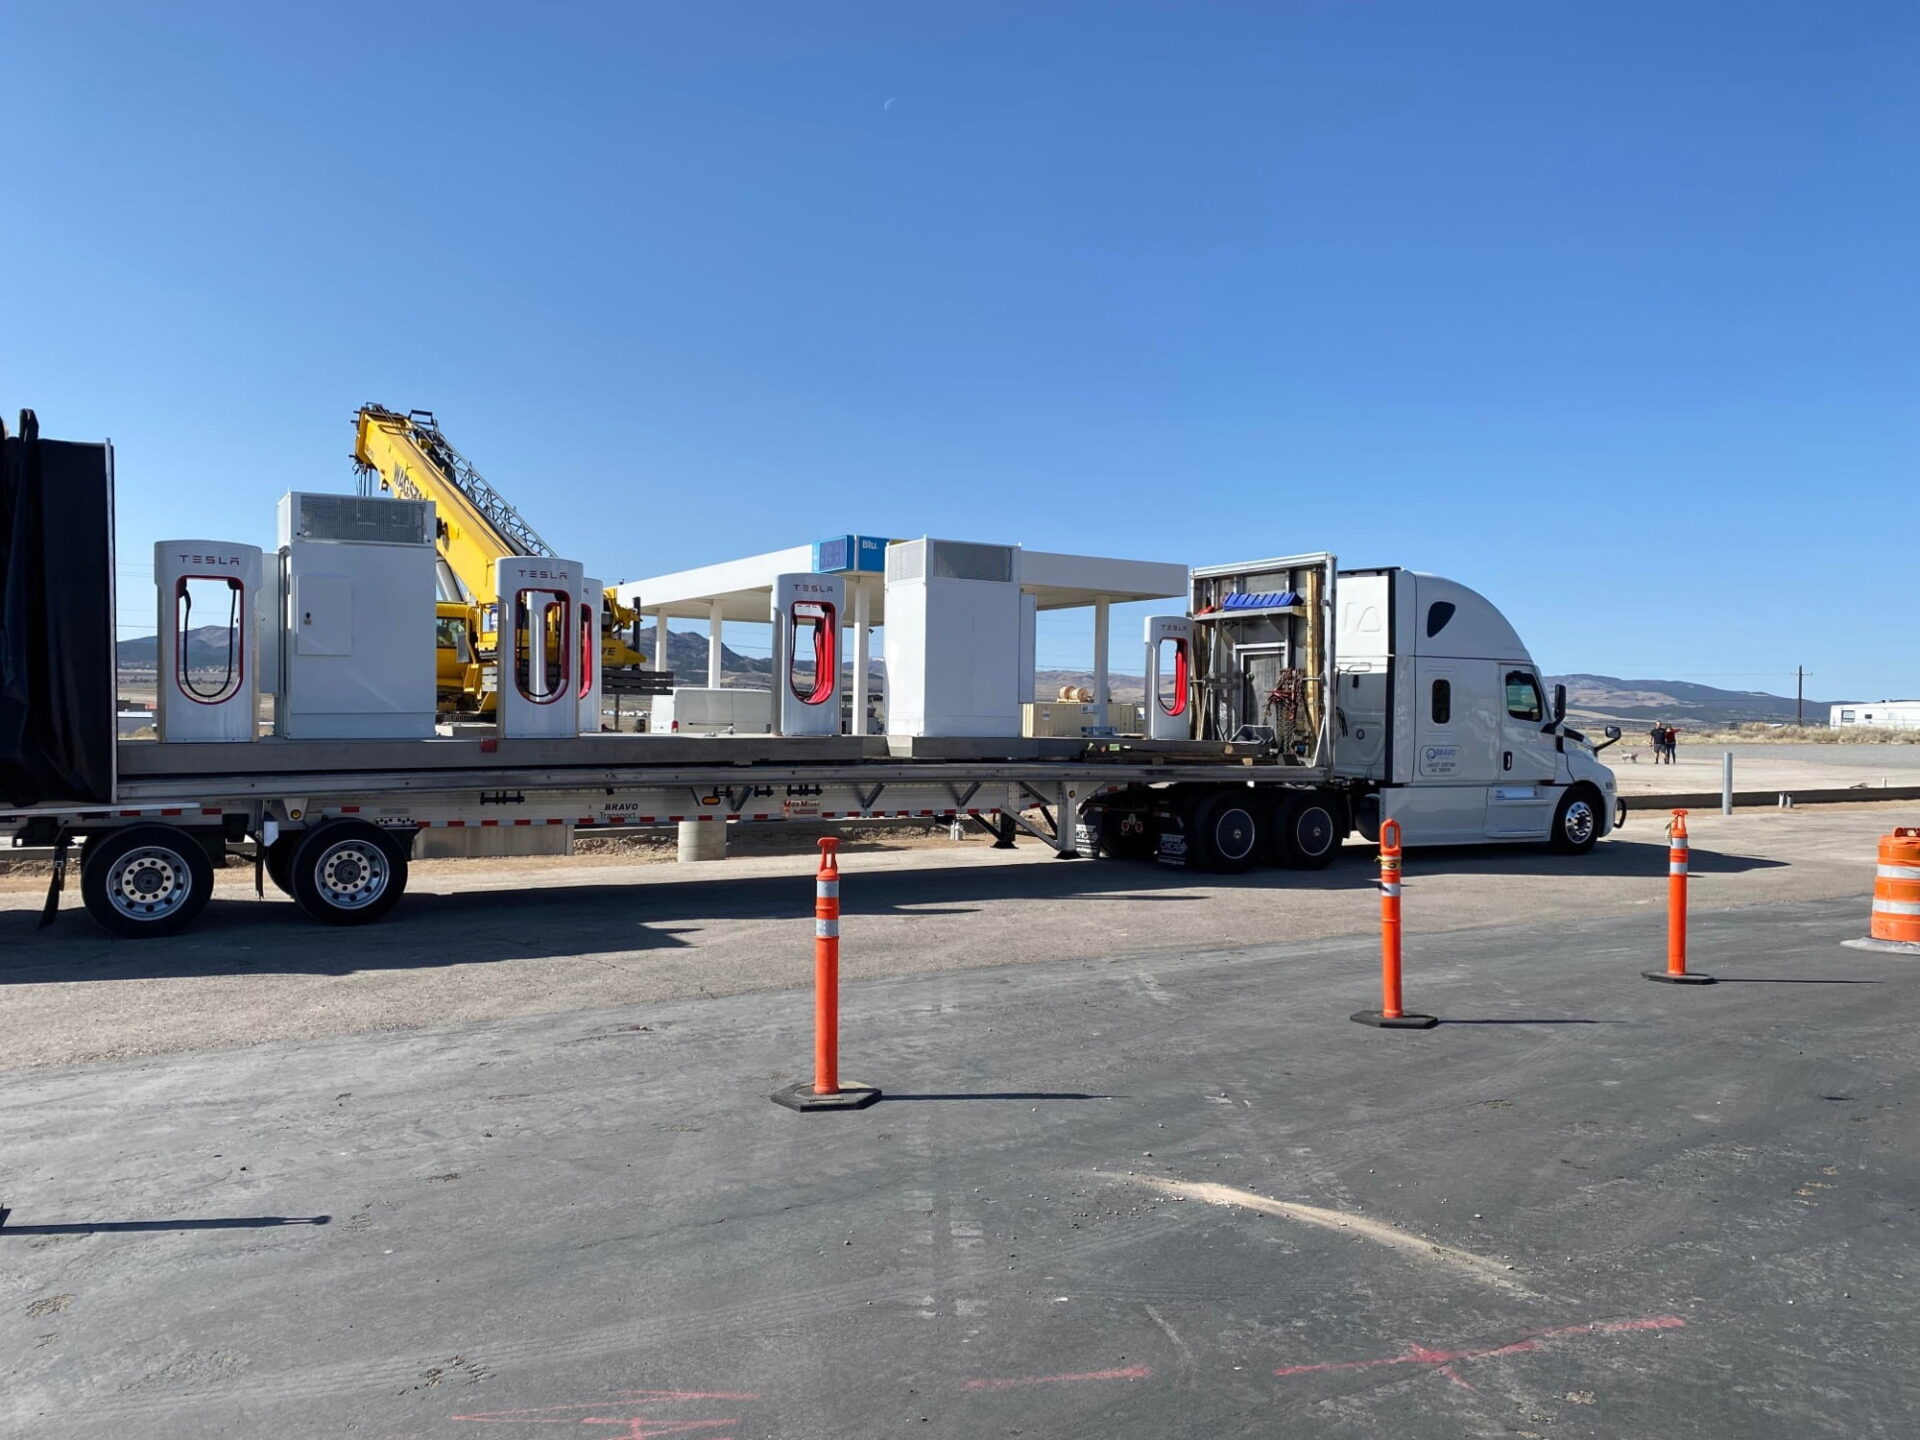 Tesla Using Prefabricated Superchargers to Fast-Track Construction - TeslaNorth.com